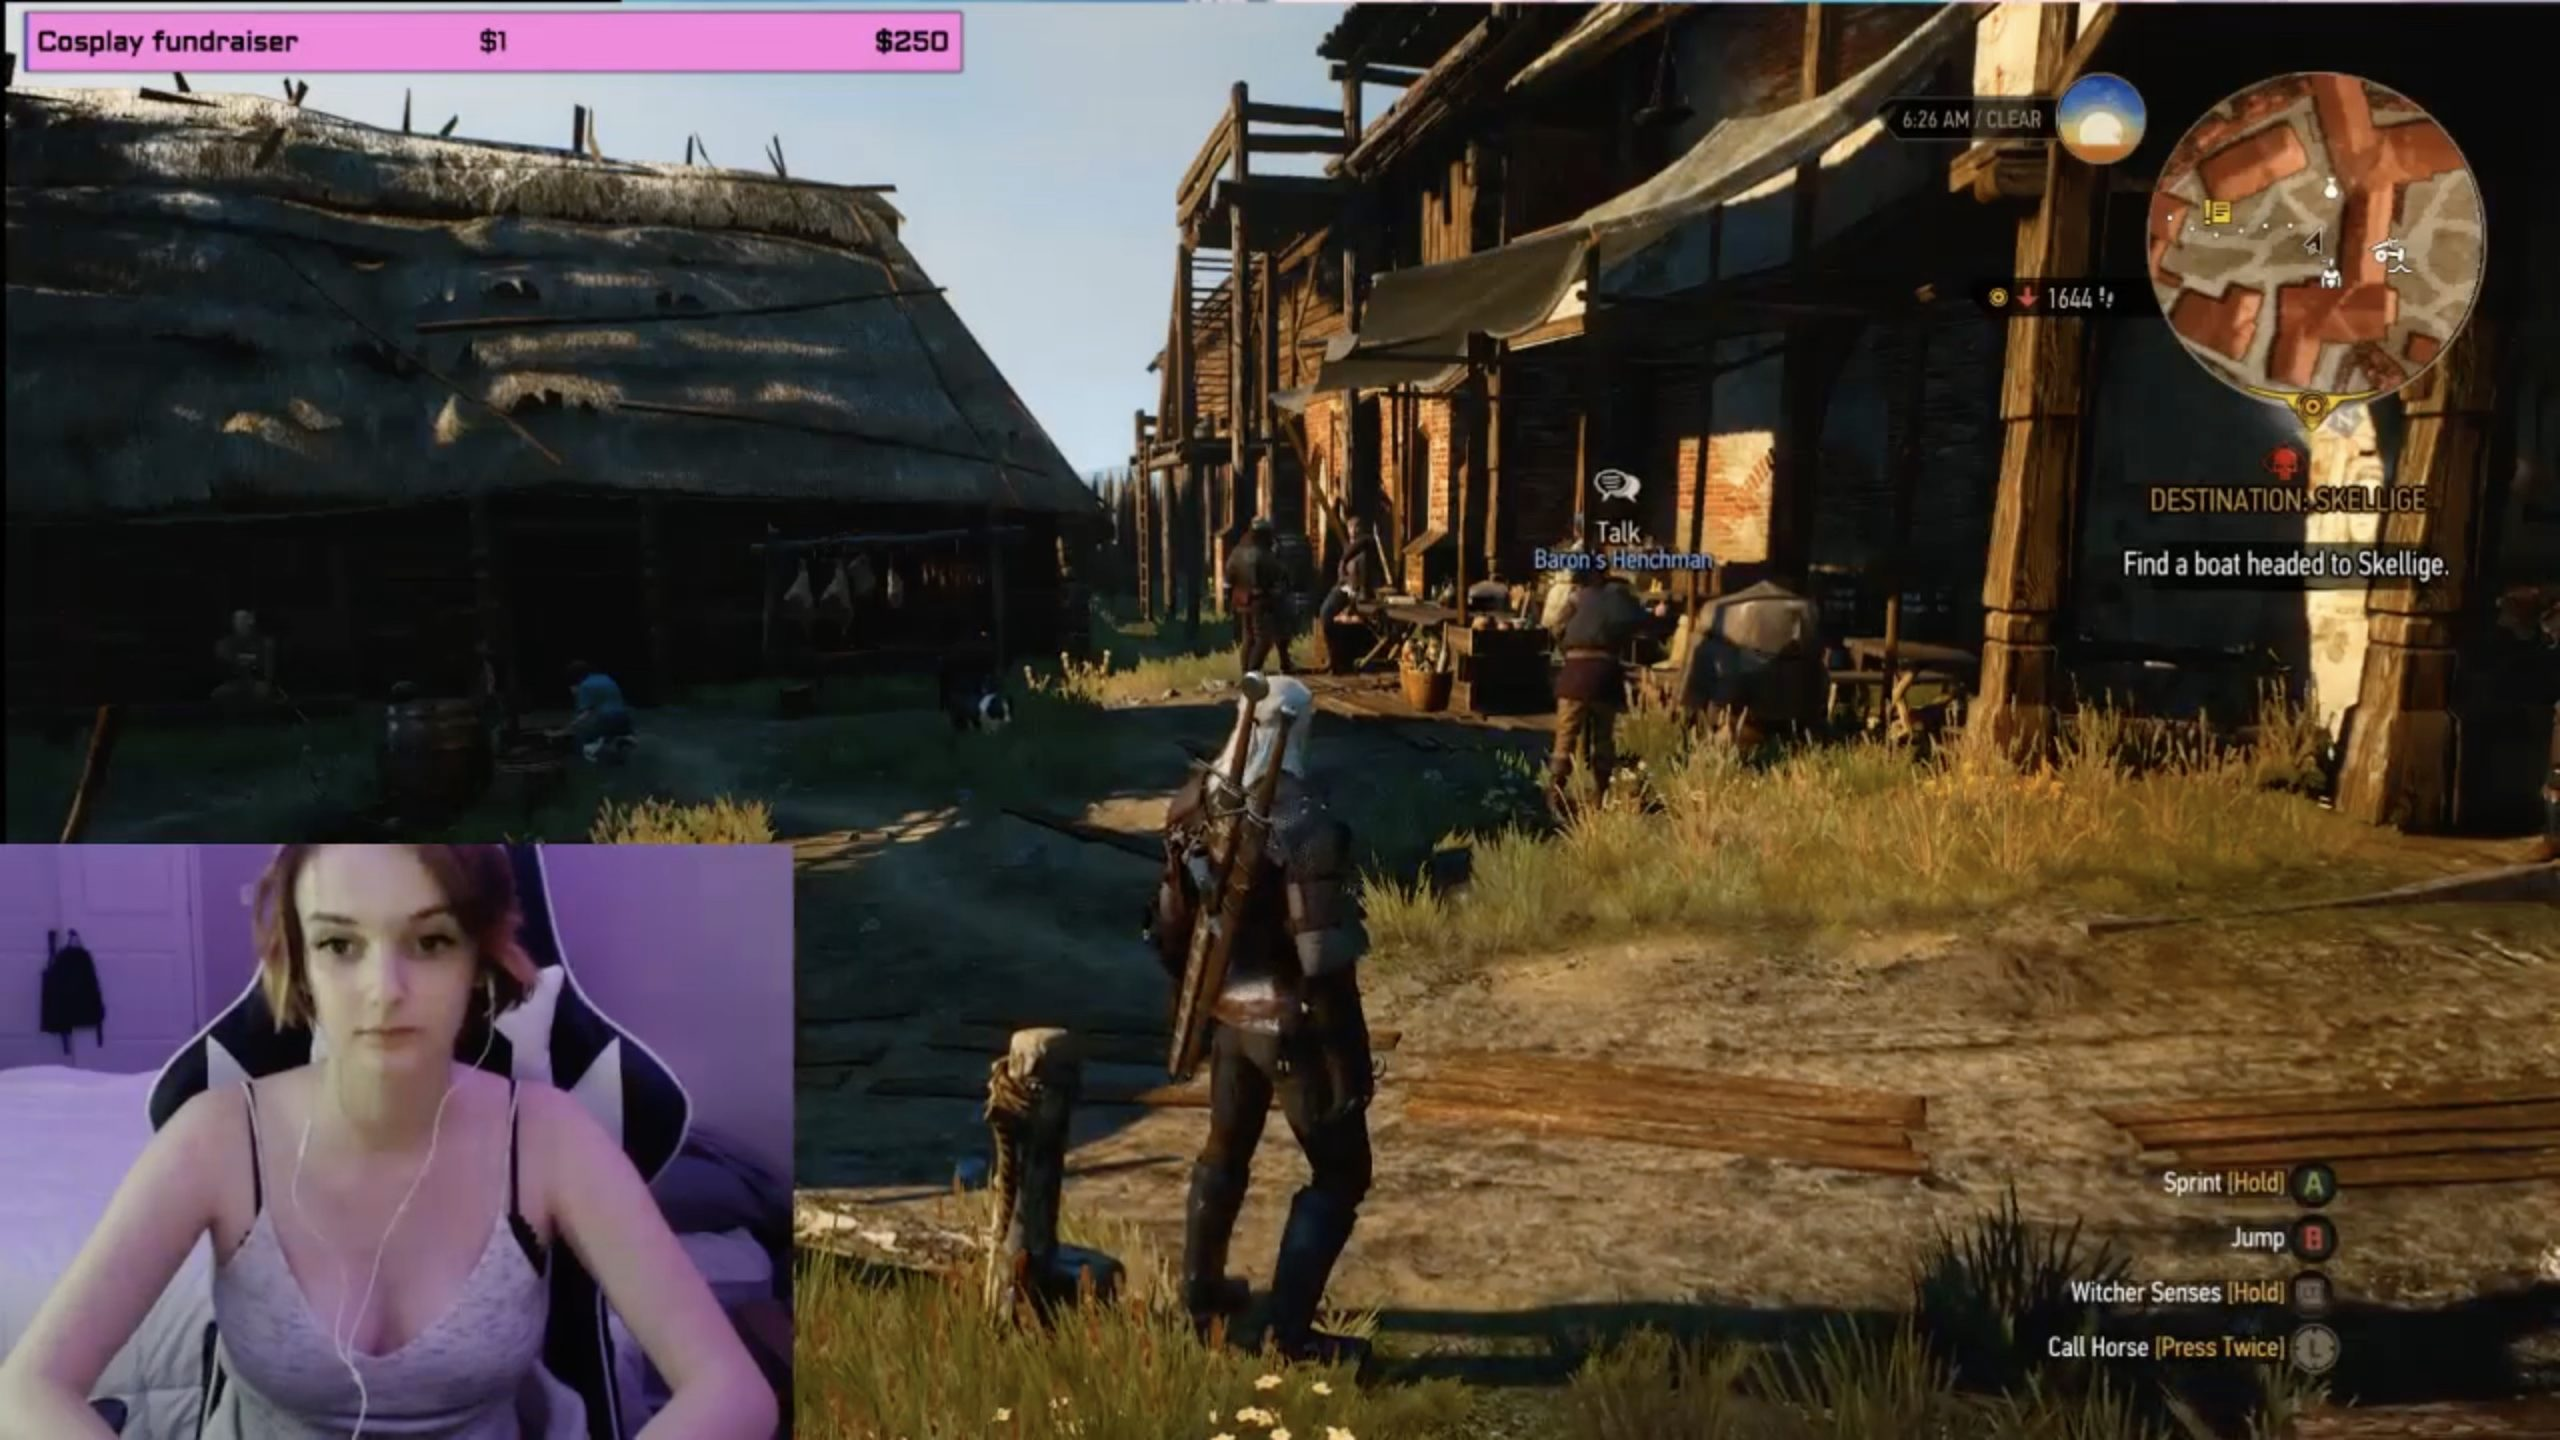 Sweet_Nymph Tosses A Coin To The Witcher